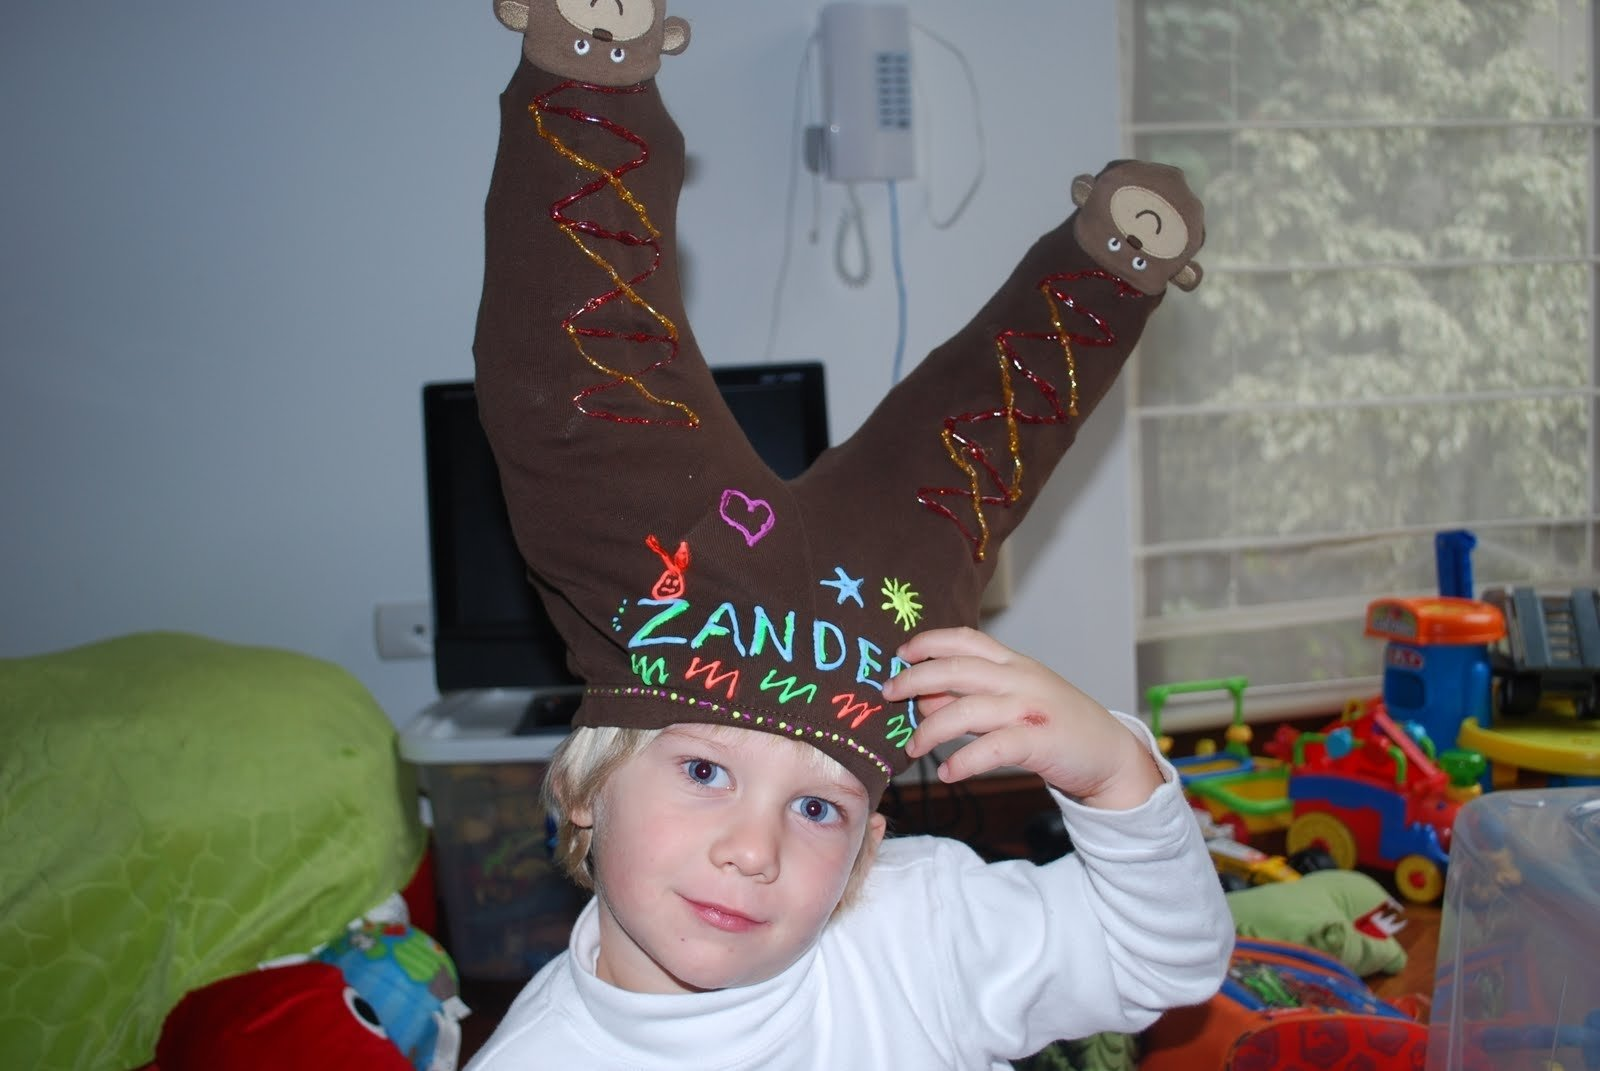 10 Cute Ideas For Crazy Hat Day crazy hat day crazy hat day at zander39s happy mad hatter day 2021